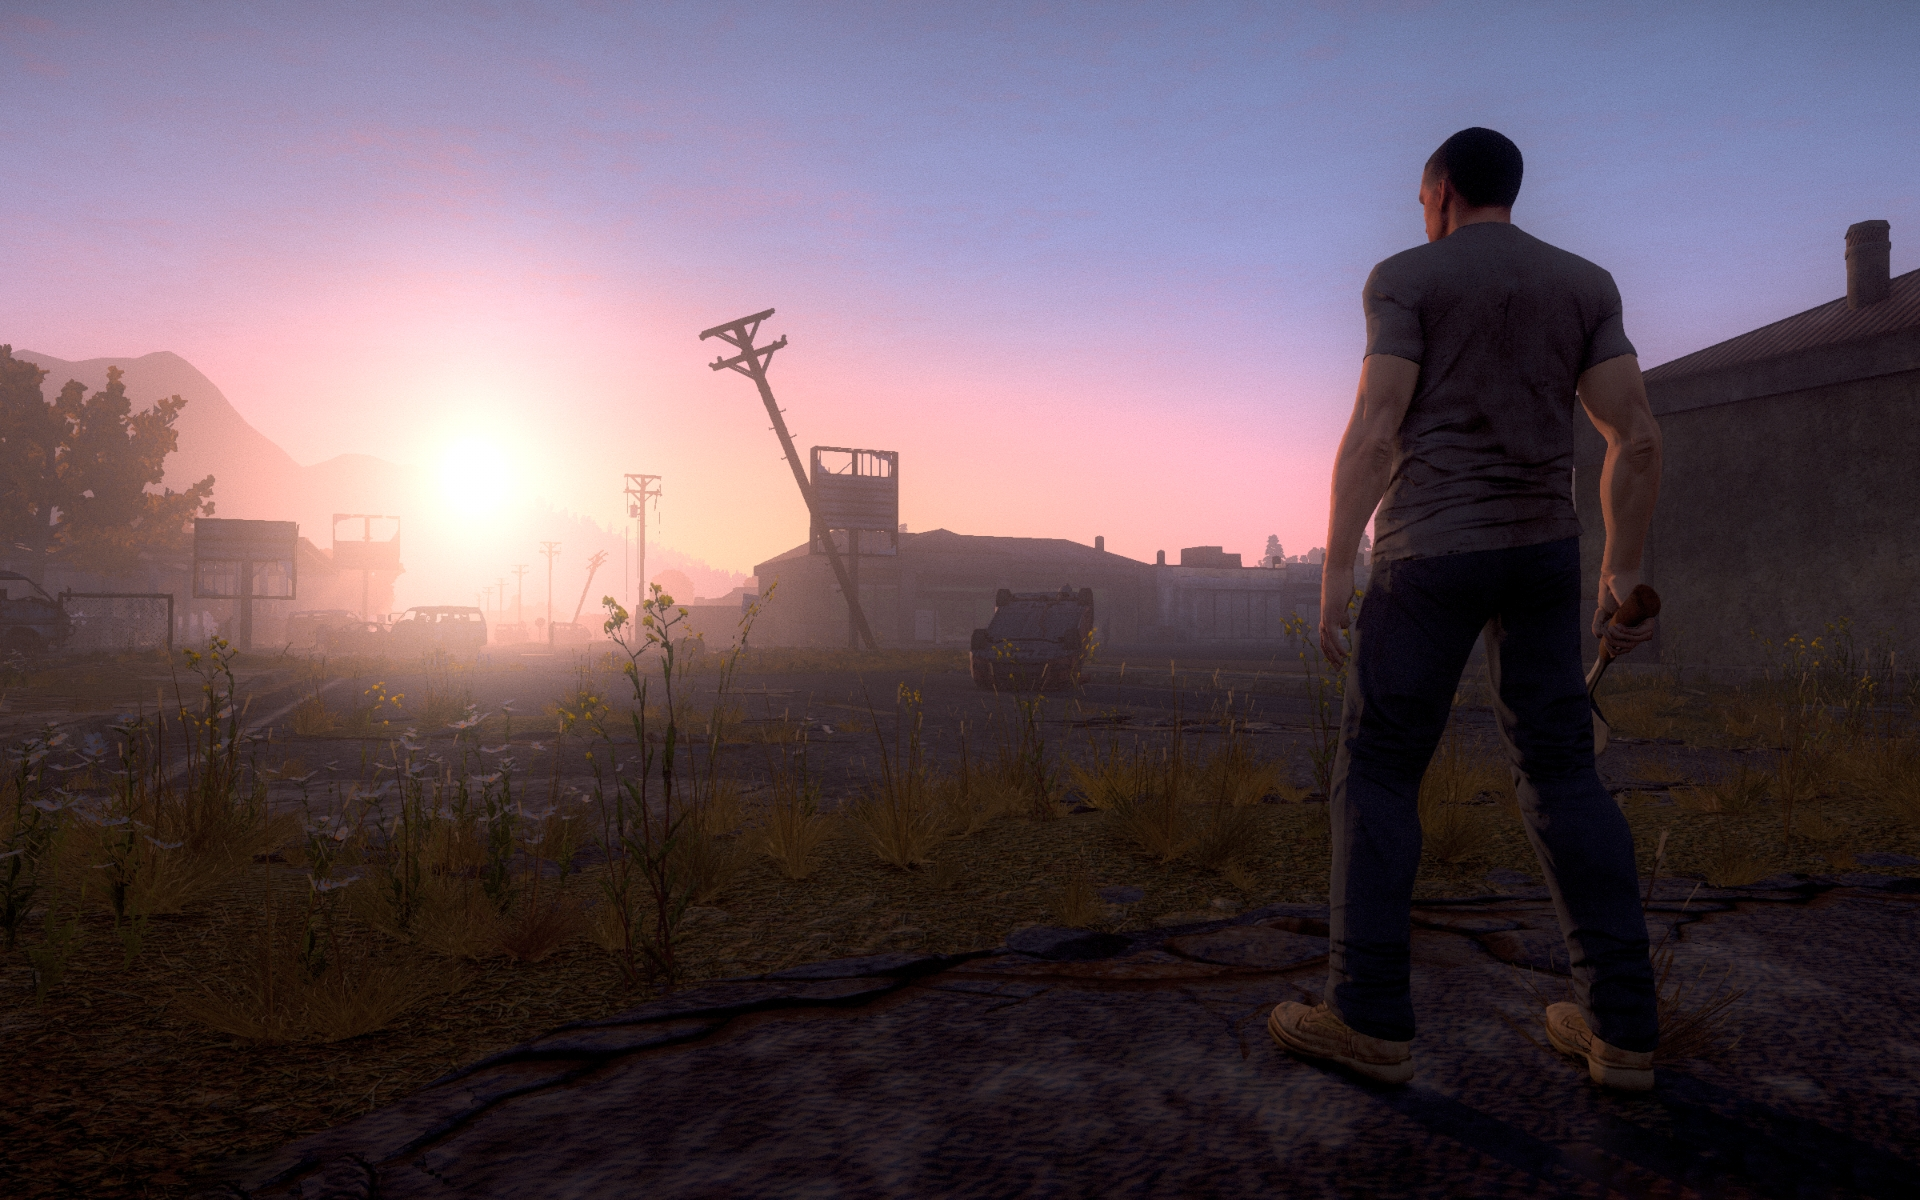 6souls games that with make game will world smedley from players h1z1 other their zombie means what expect resources survival youve online have want also infected they youre very this said version after player well time were like going work crafting features death your chat if servers sony its first different